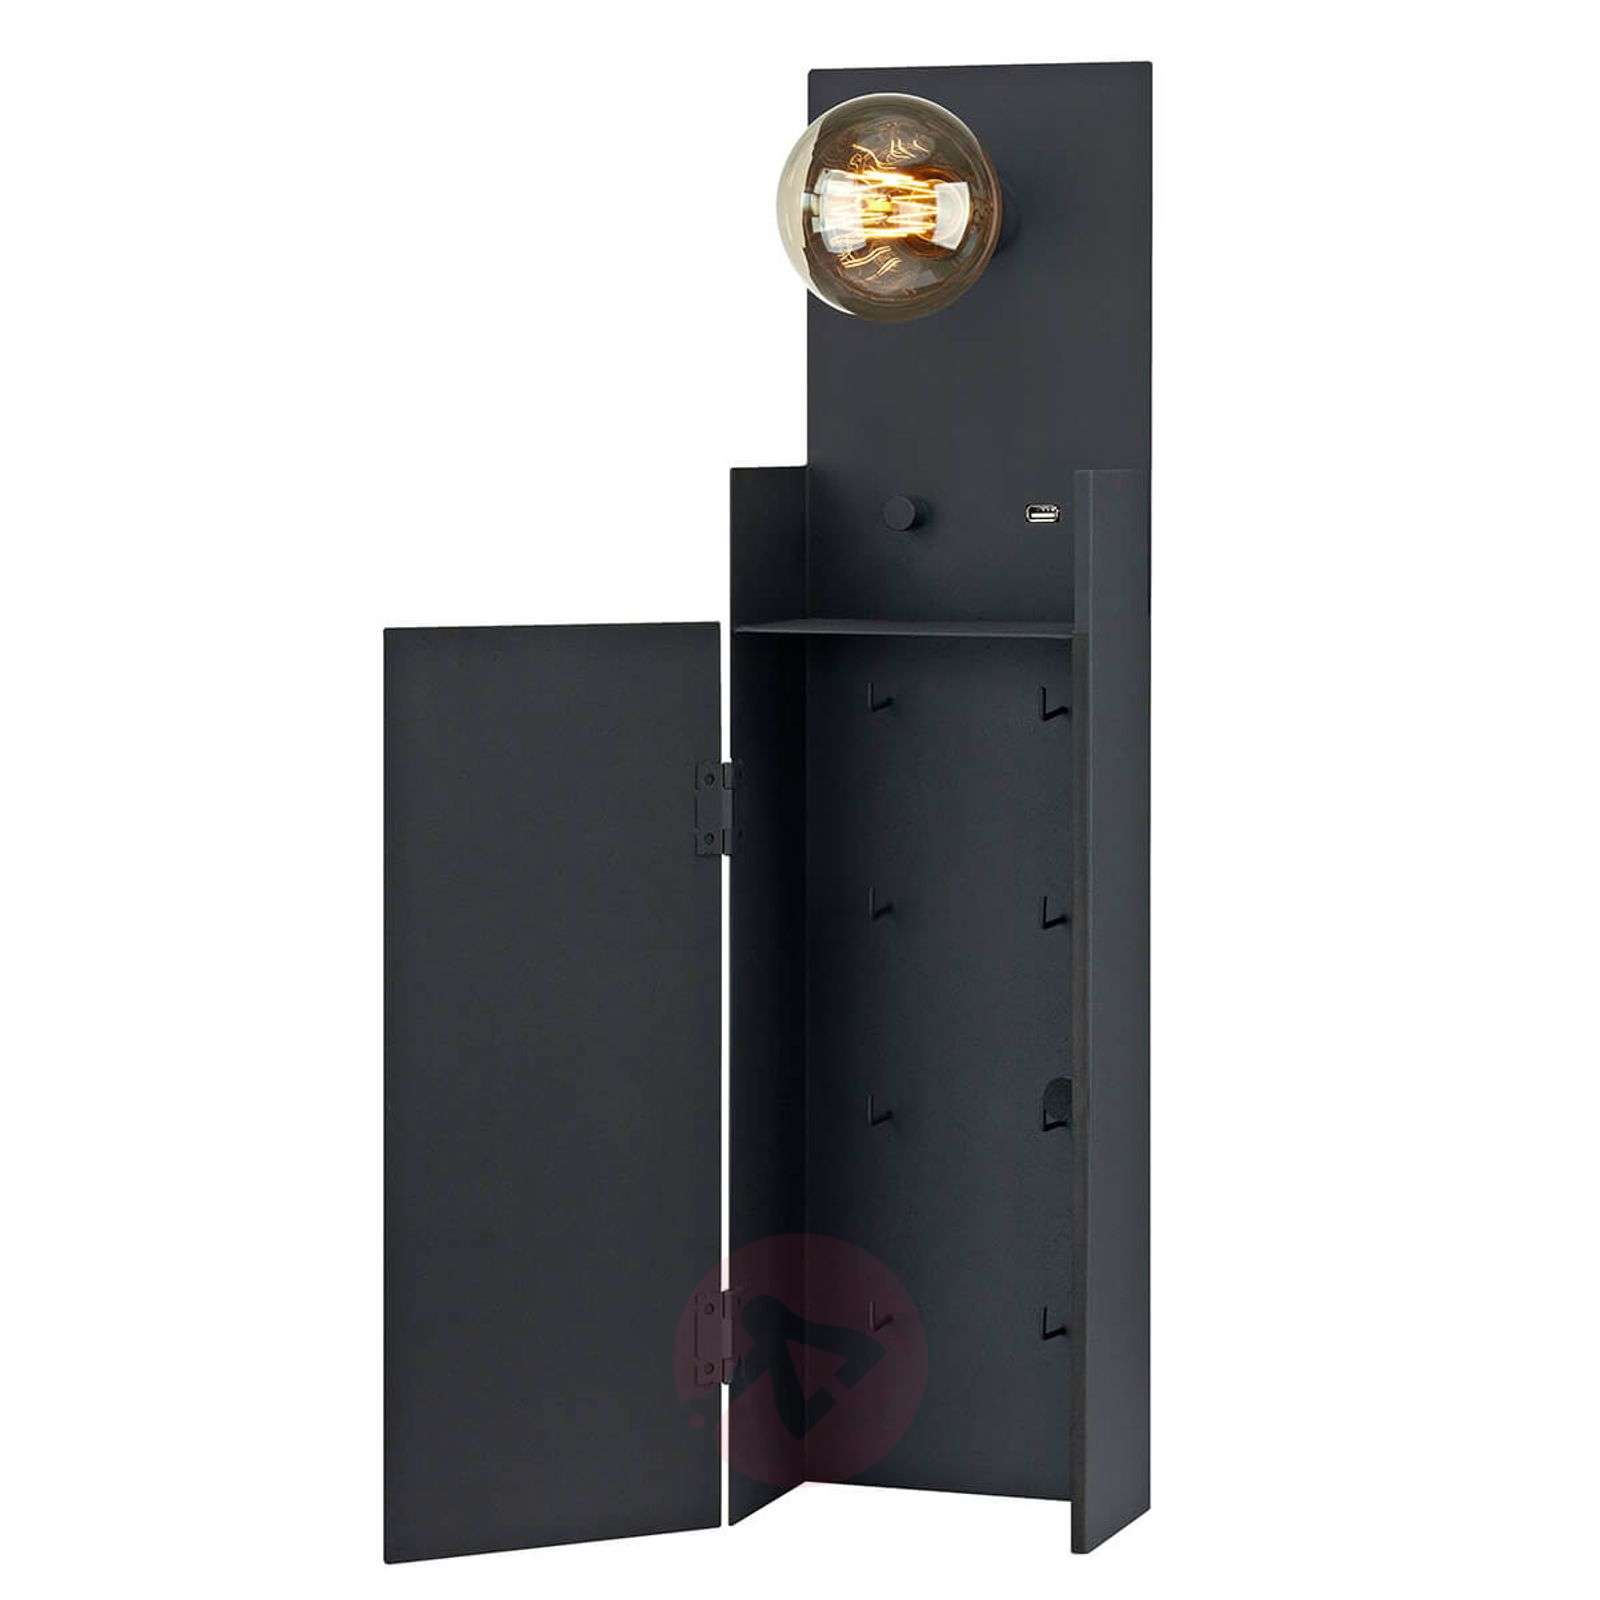 Combo wall lamp with key cabinet and USB point.-6506161-01